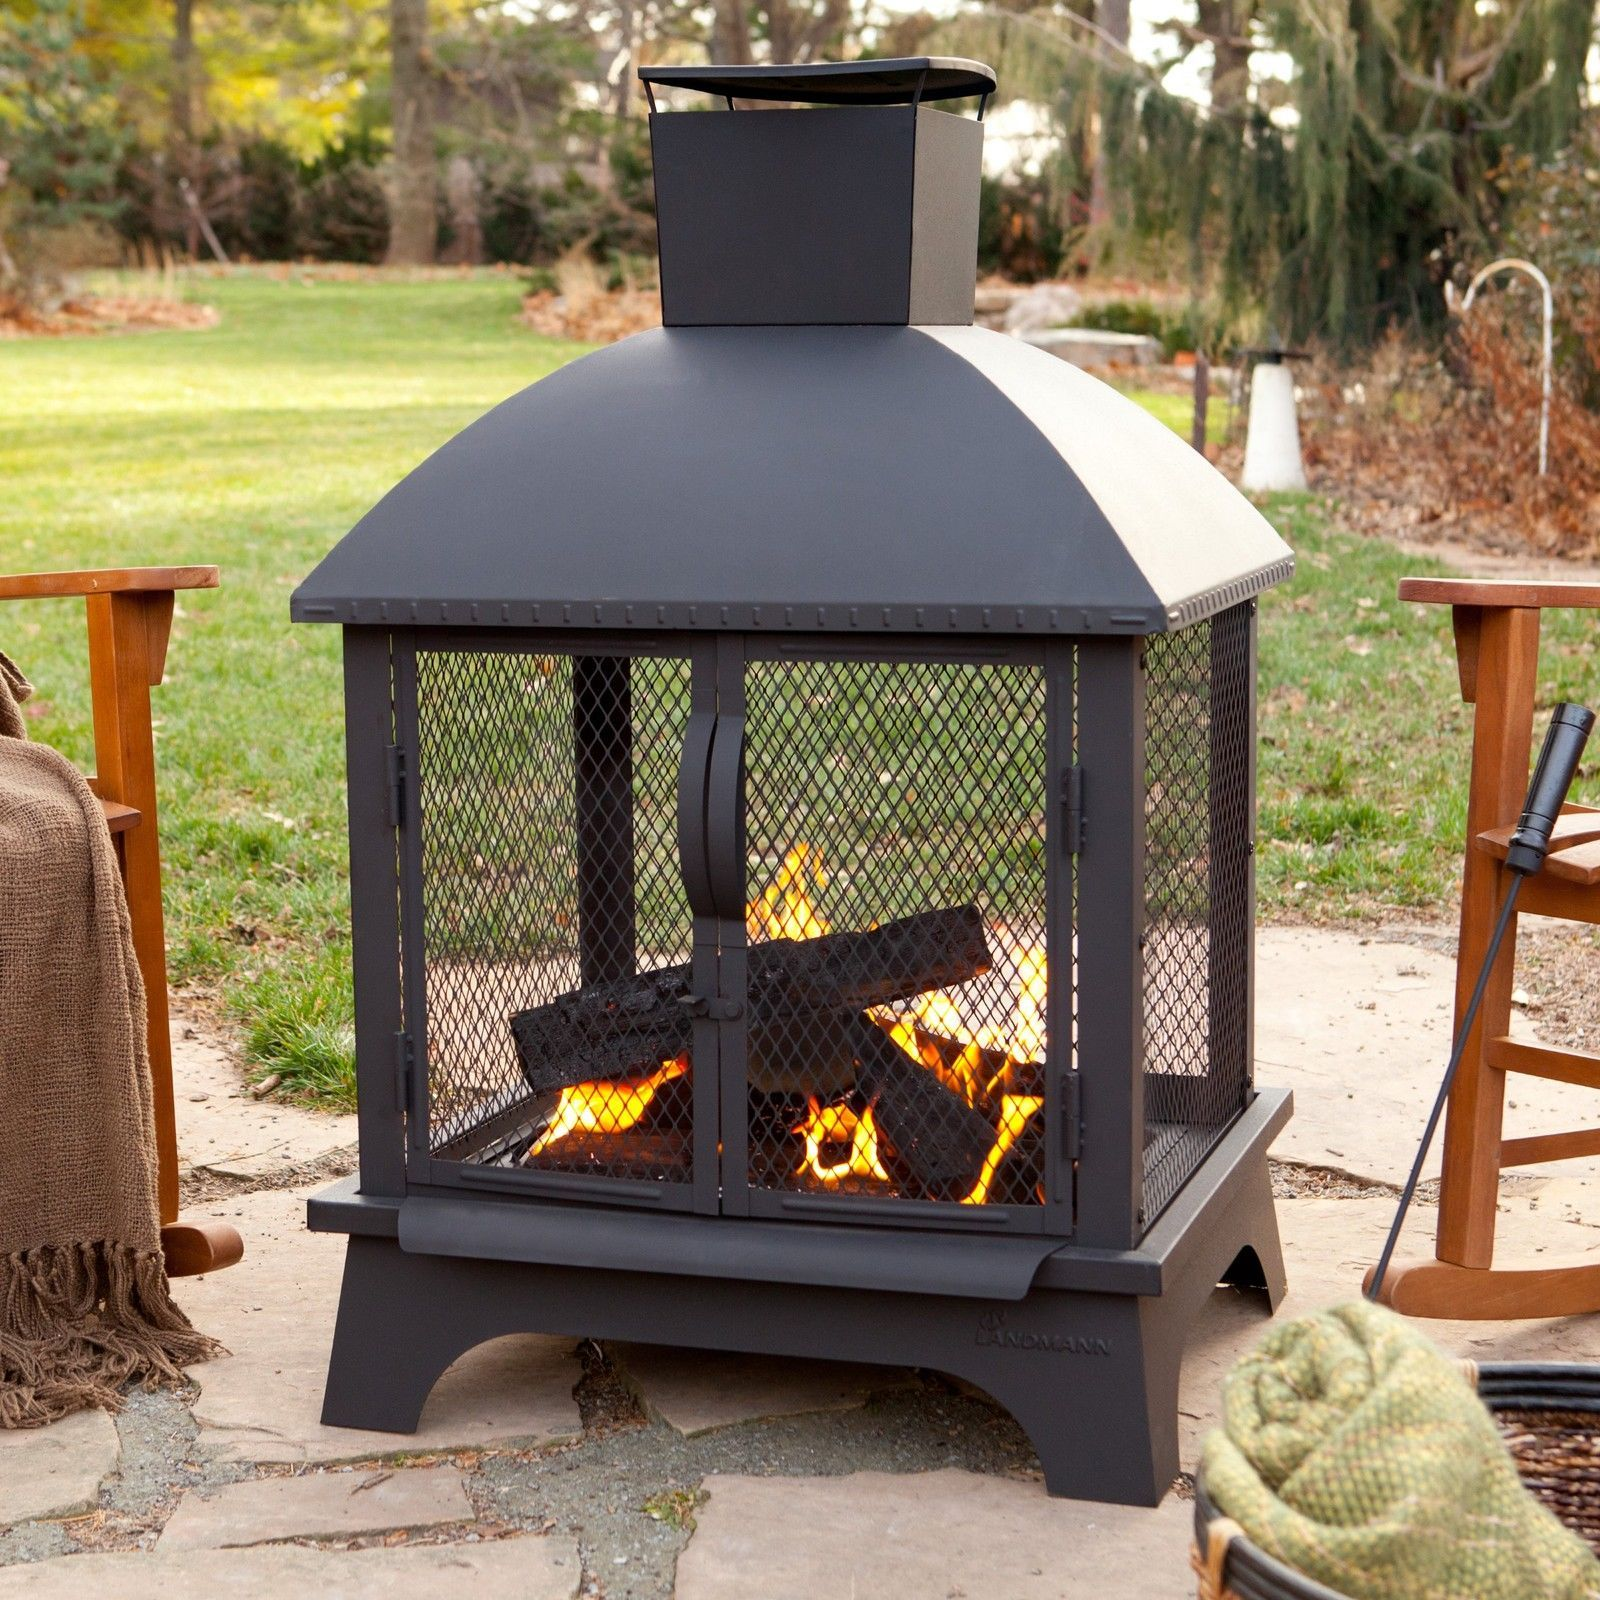 Outdoor Patio Fireplace Wood Burning Fire Pit Chiminea Deck Backyard Heater New Fire Pits